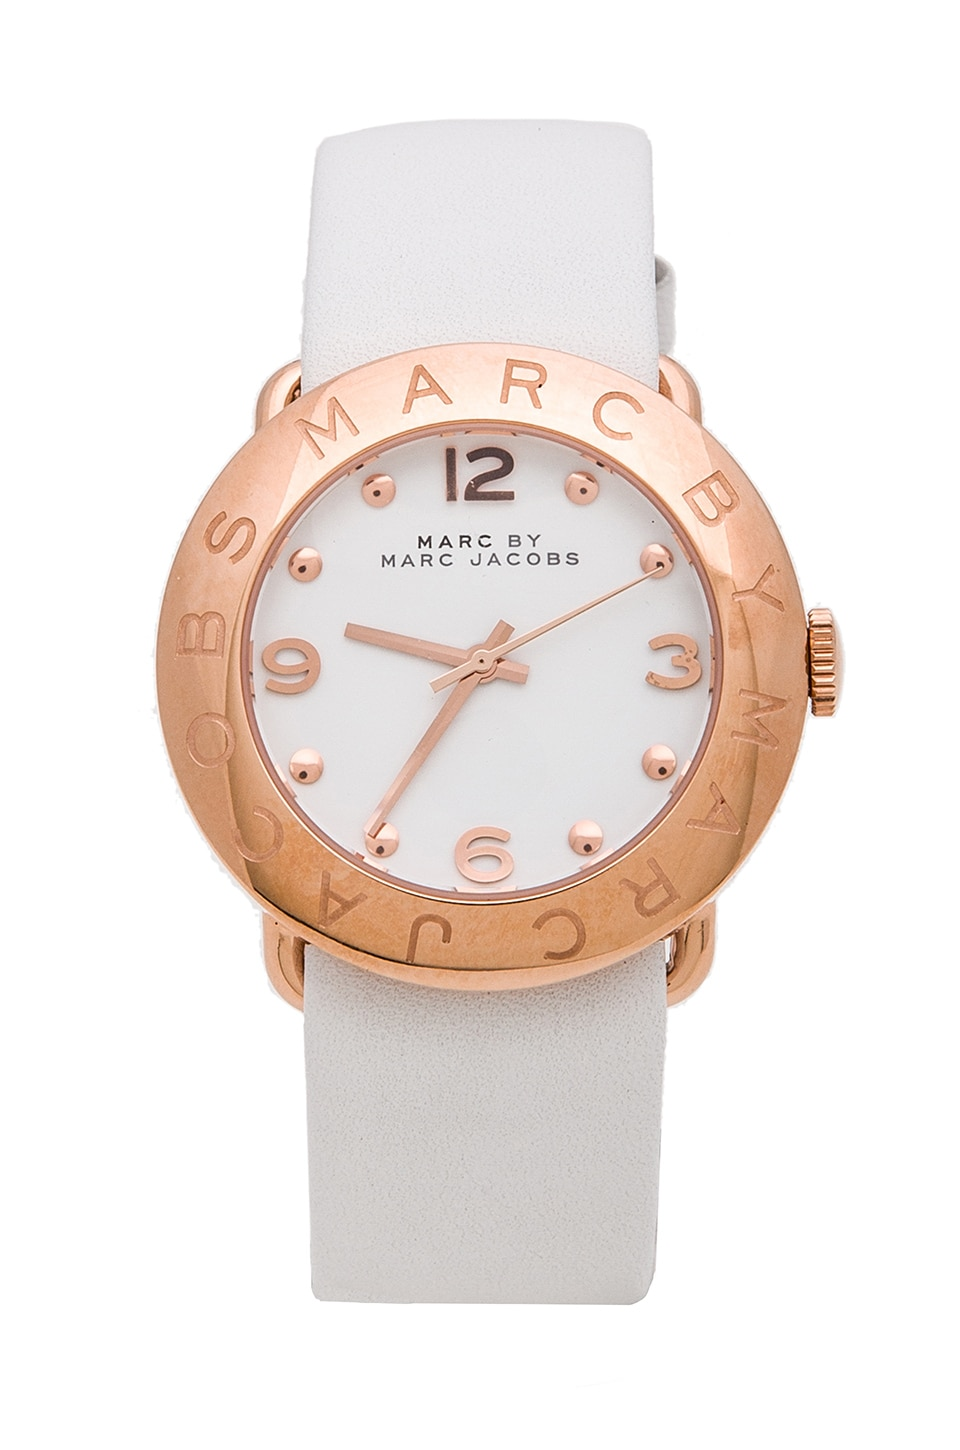 Marc by Marc Jacobs Amy Watch in White/Rosegold